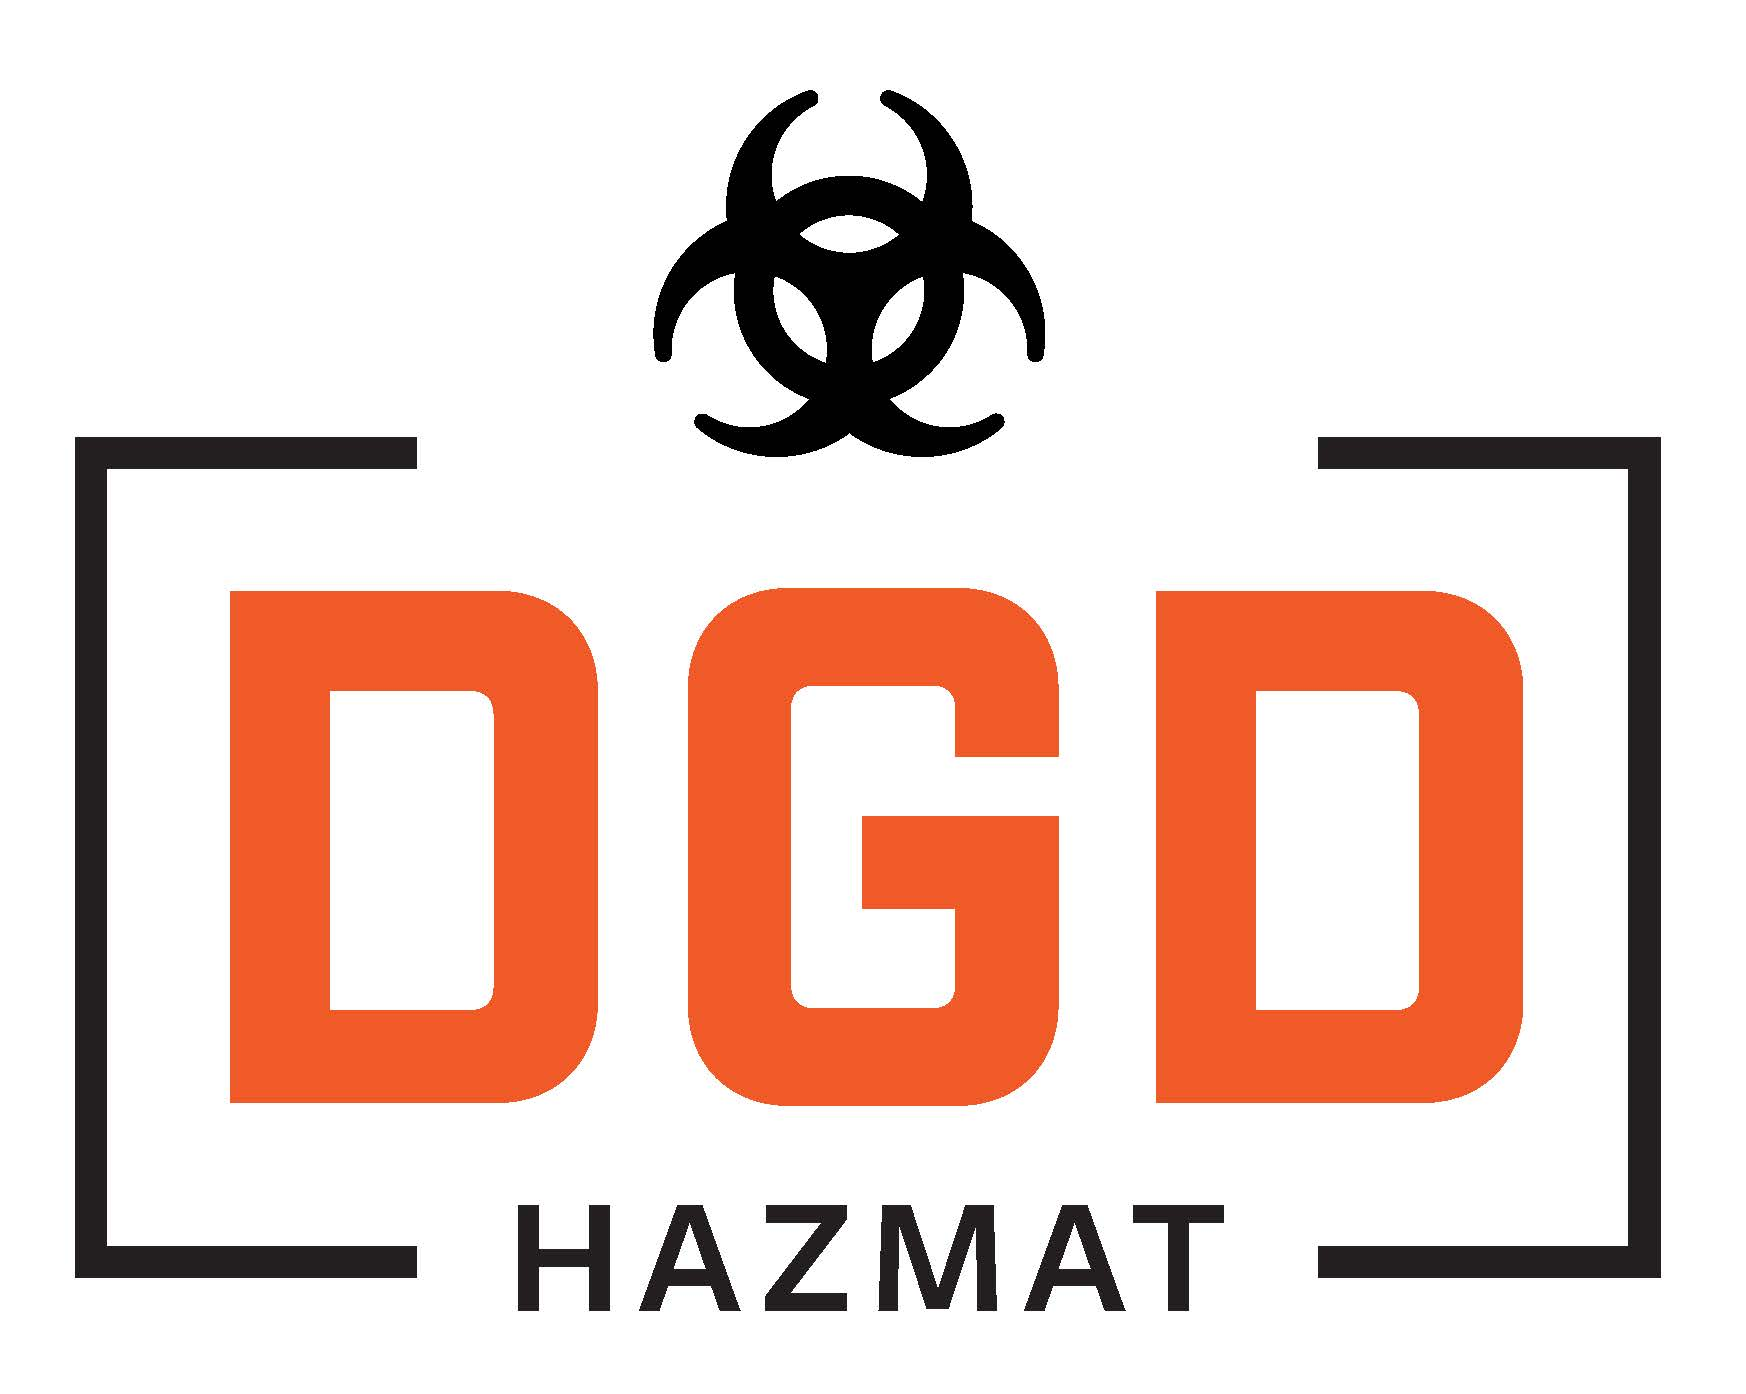 Uploaded Image: /uploads/Forum/DGD_hazmat LOGO PDF.jpg